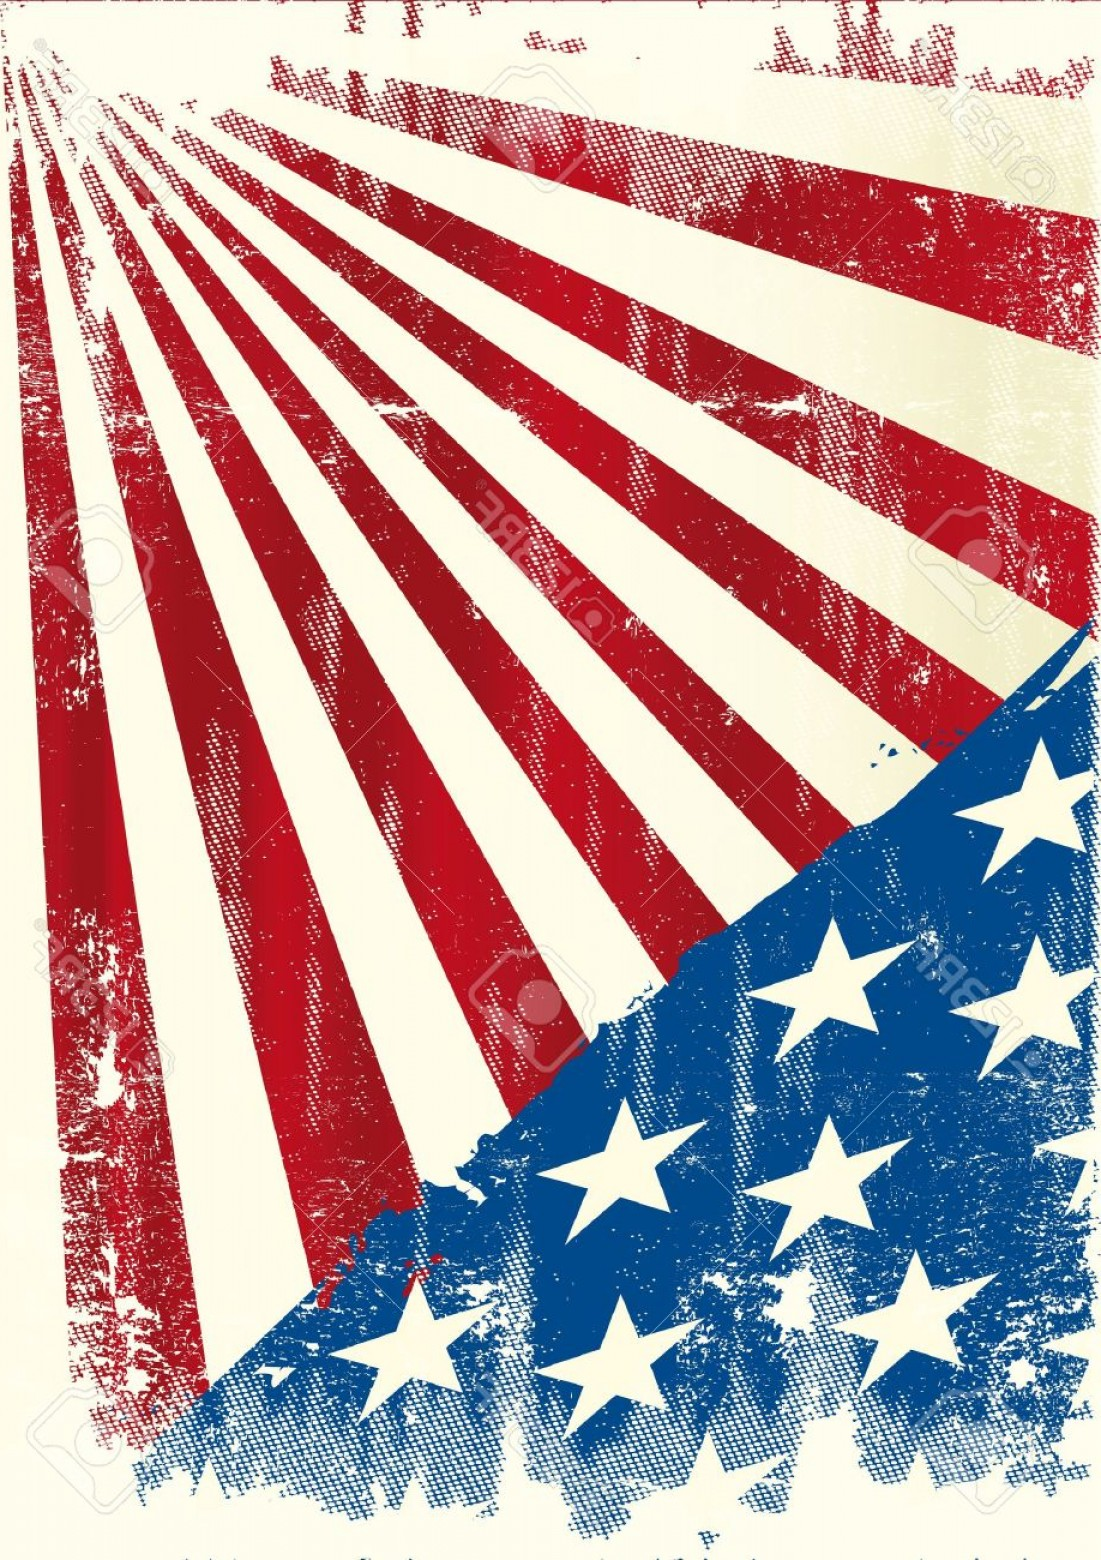 US Flag Vector Lines: Photoan American Grunge Background For A Poster